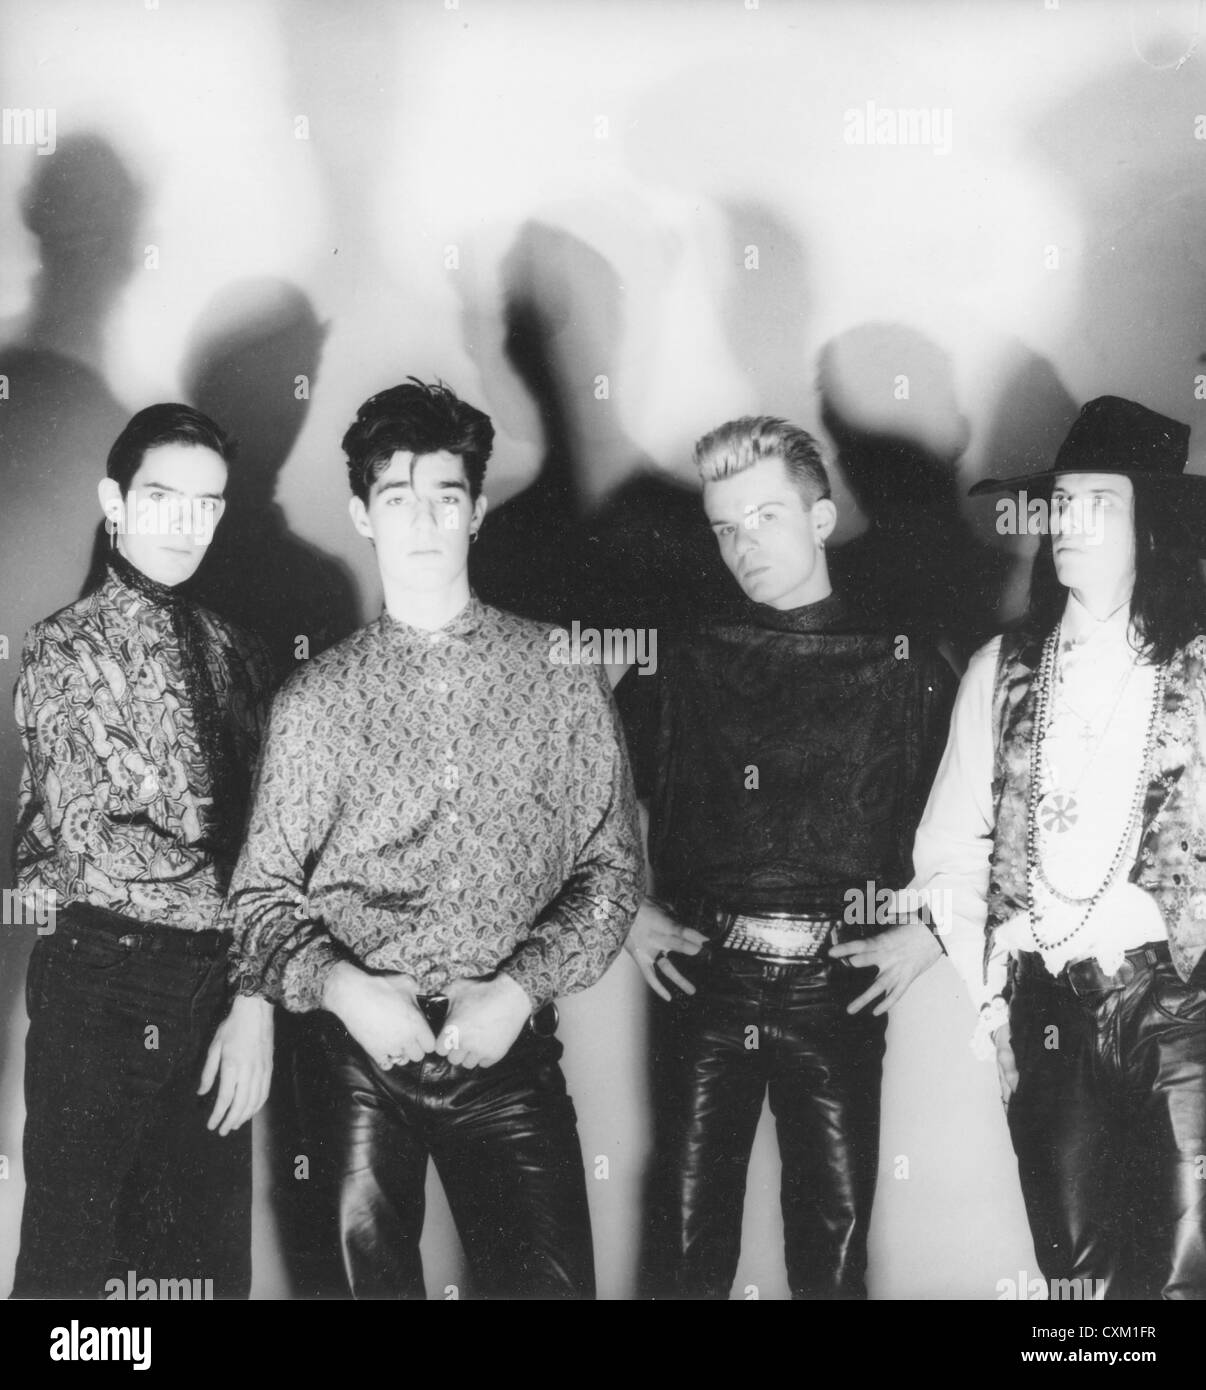 THE CULT Promotional photo of UK rock group about 1985. From l: Jamie Stewart, Nigel Preston, Billy Duffy, Ian Astbury - Stock Image